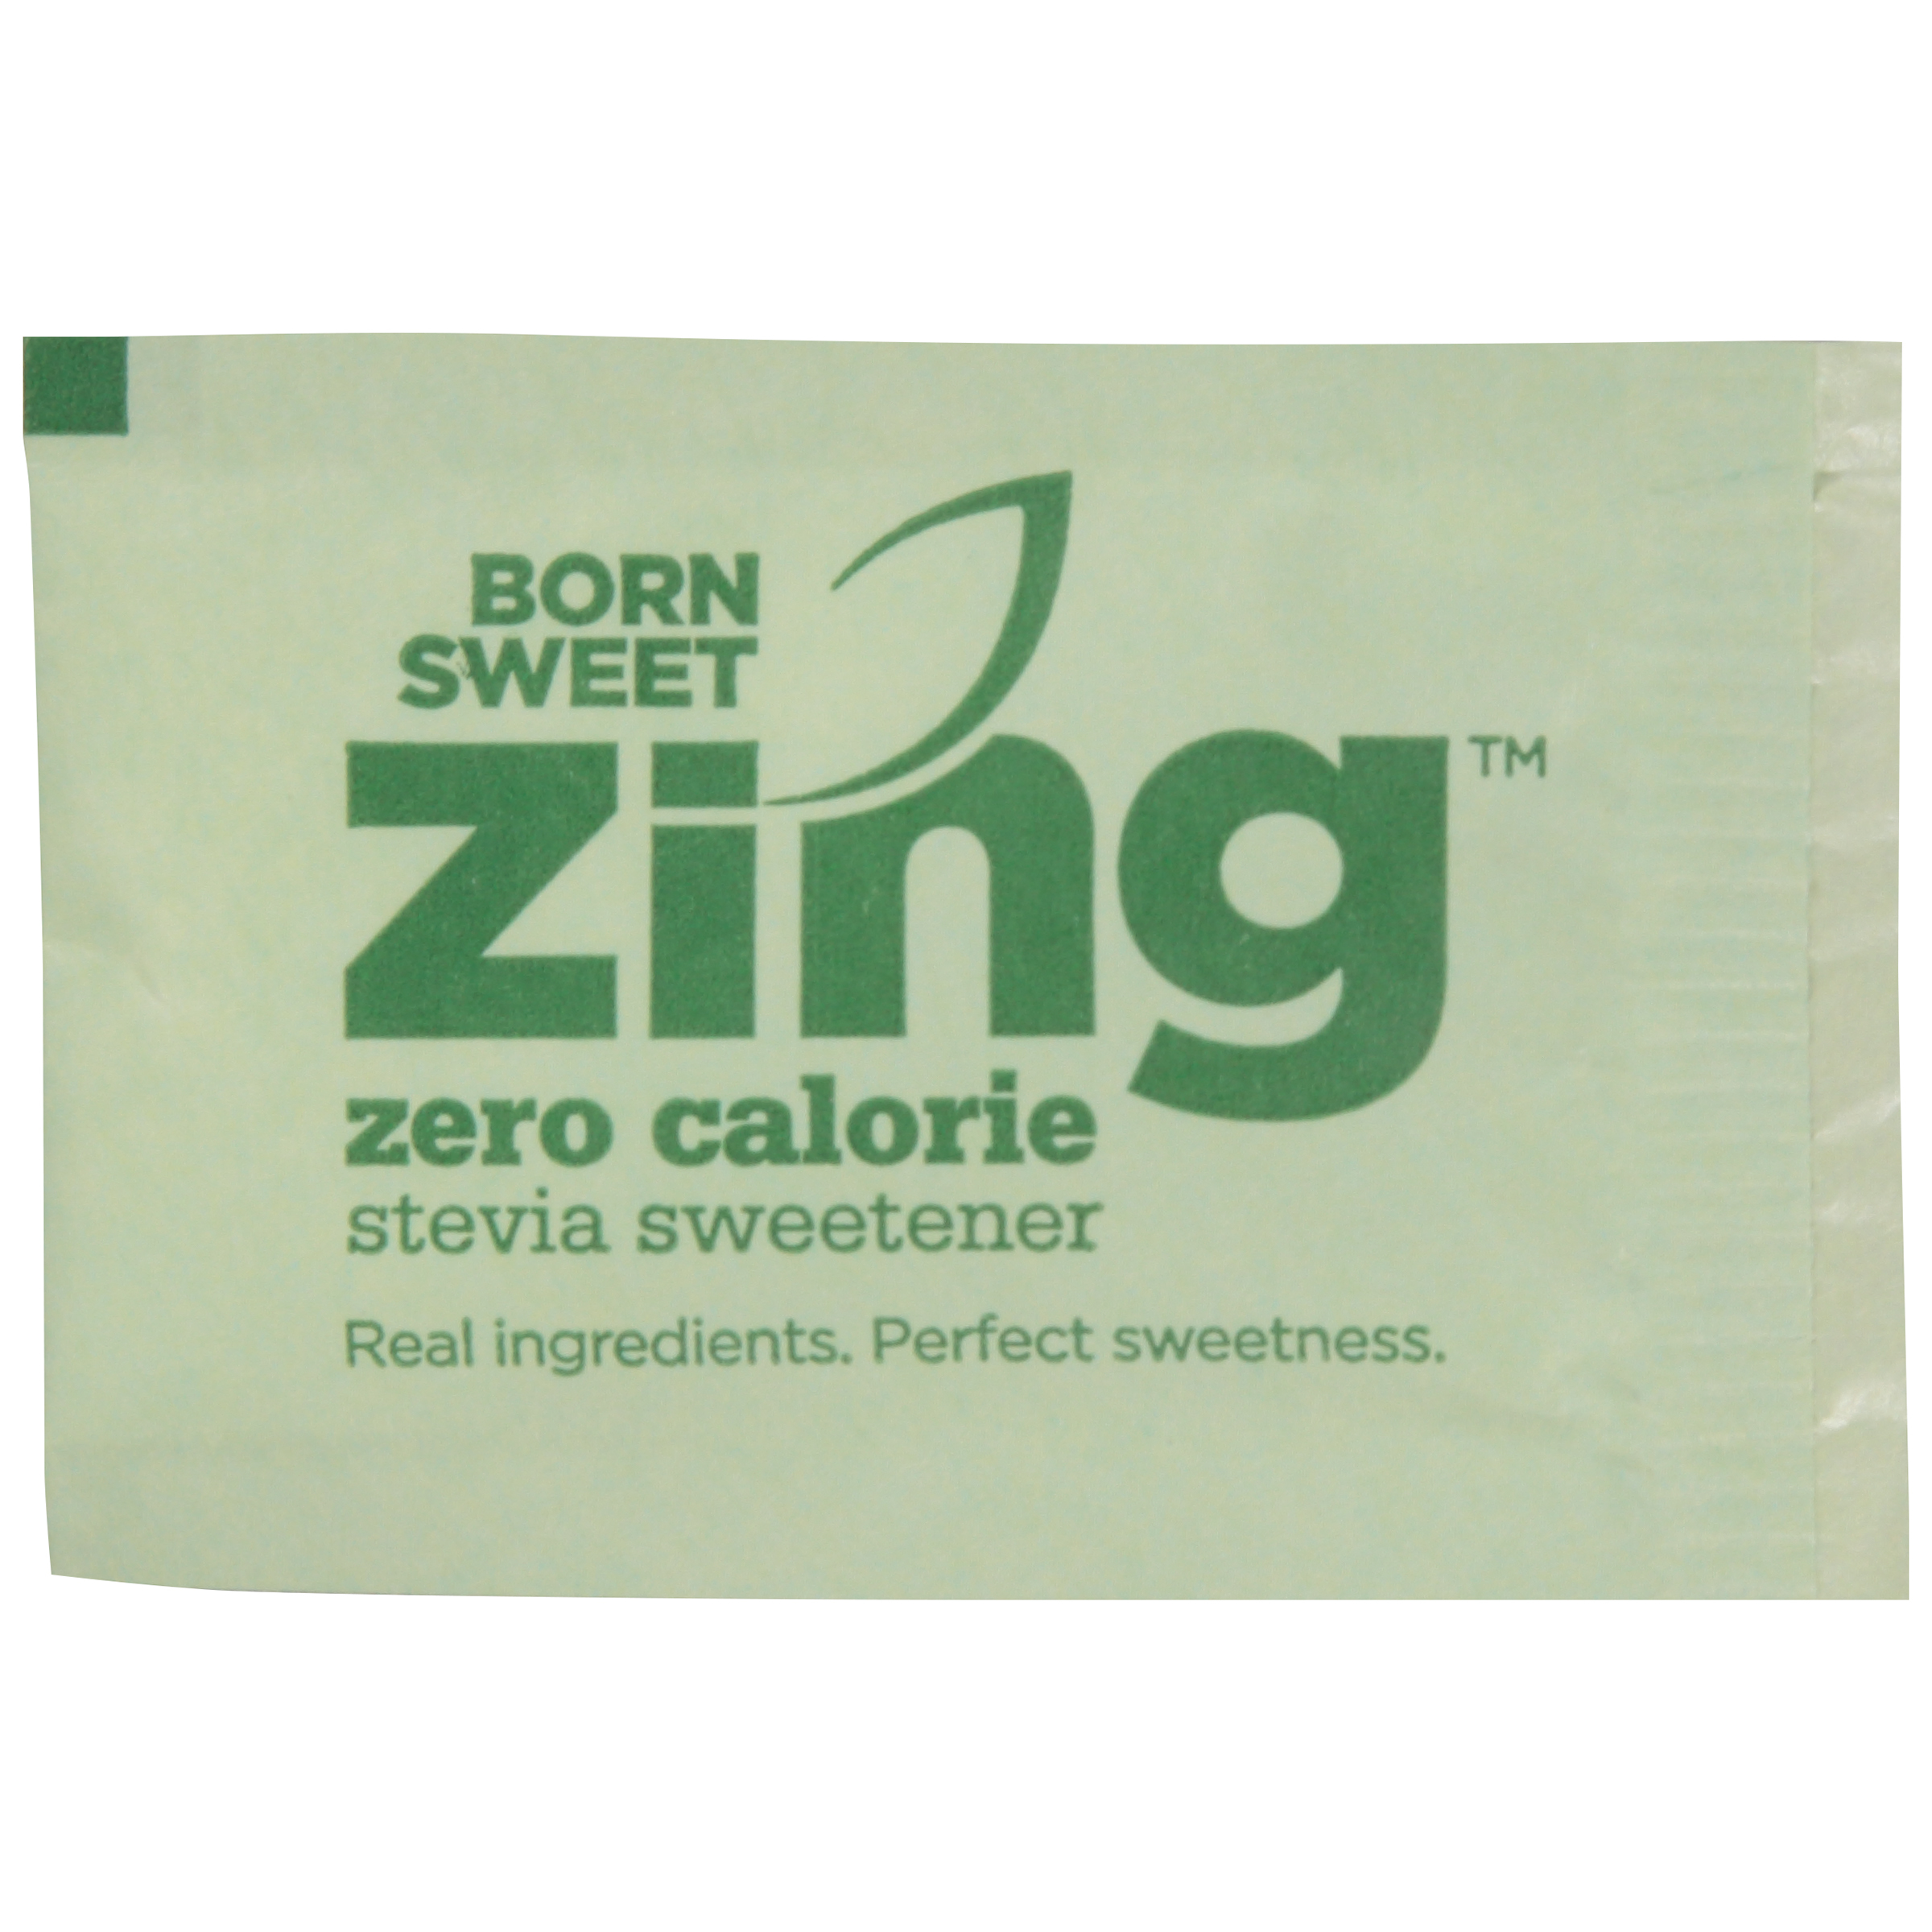 Born Sweet Zing™ Zero Calorie Stevia Sweetener Packets - 1 Gram, 1000 Count